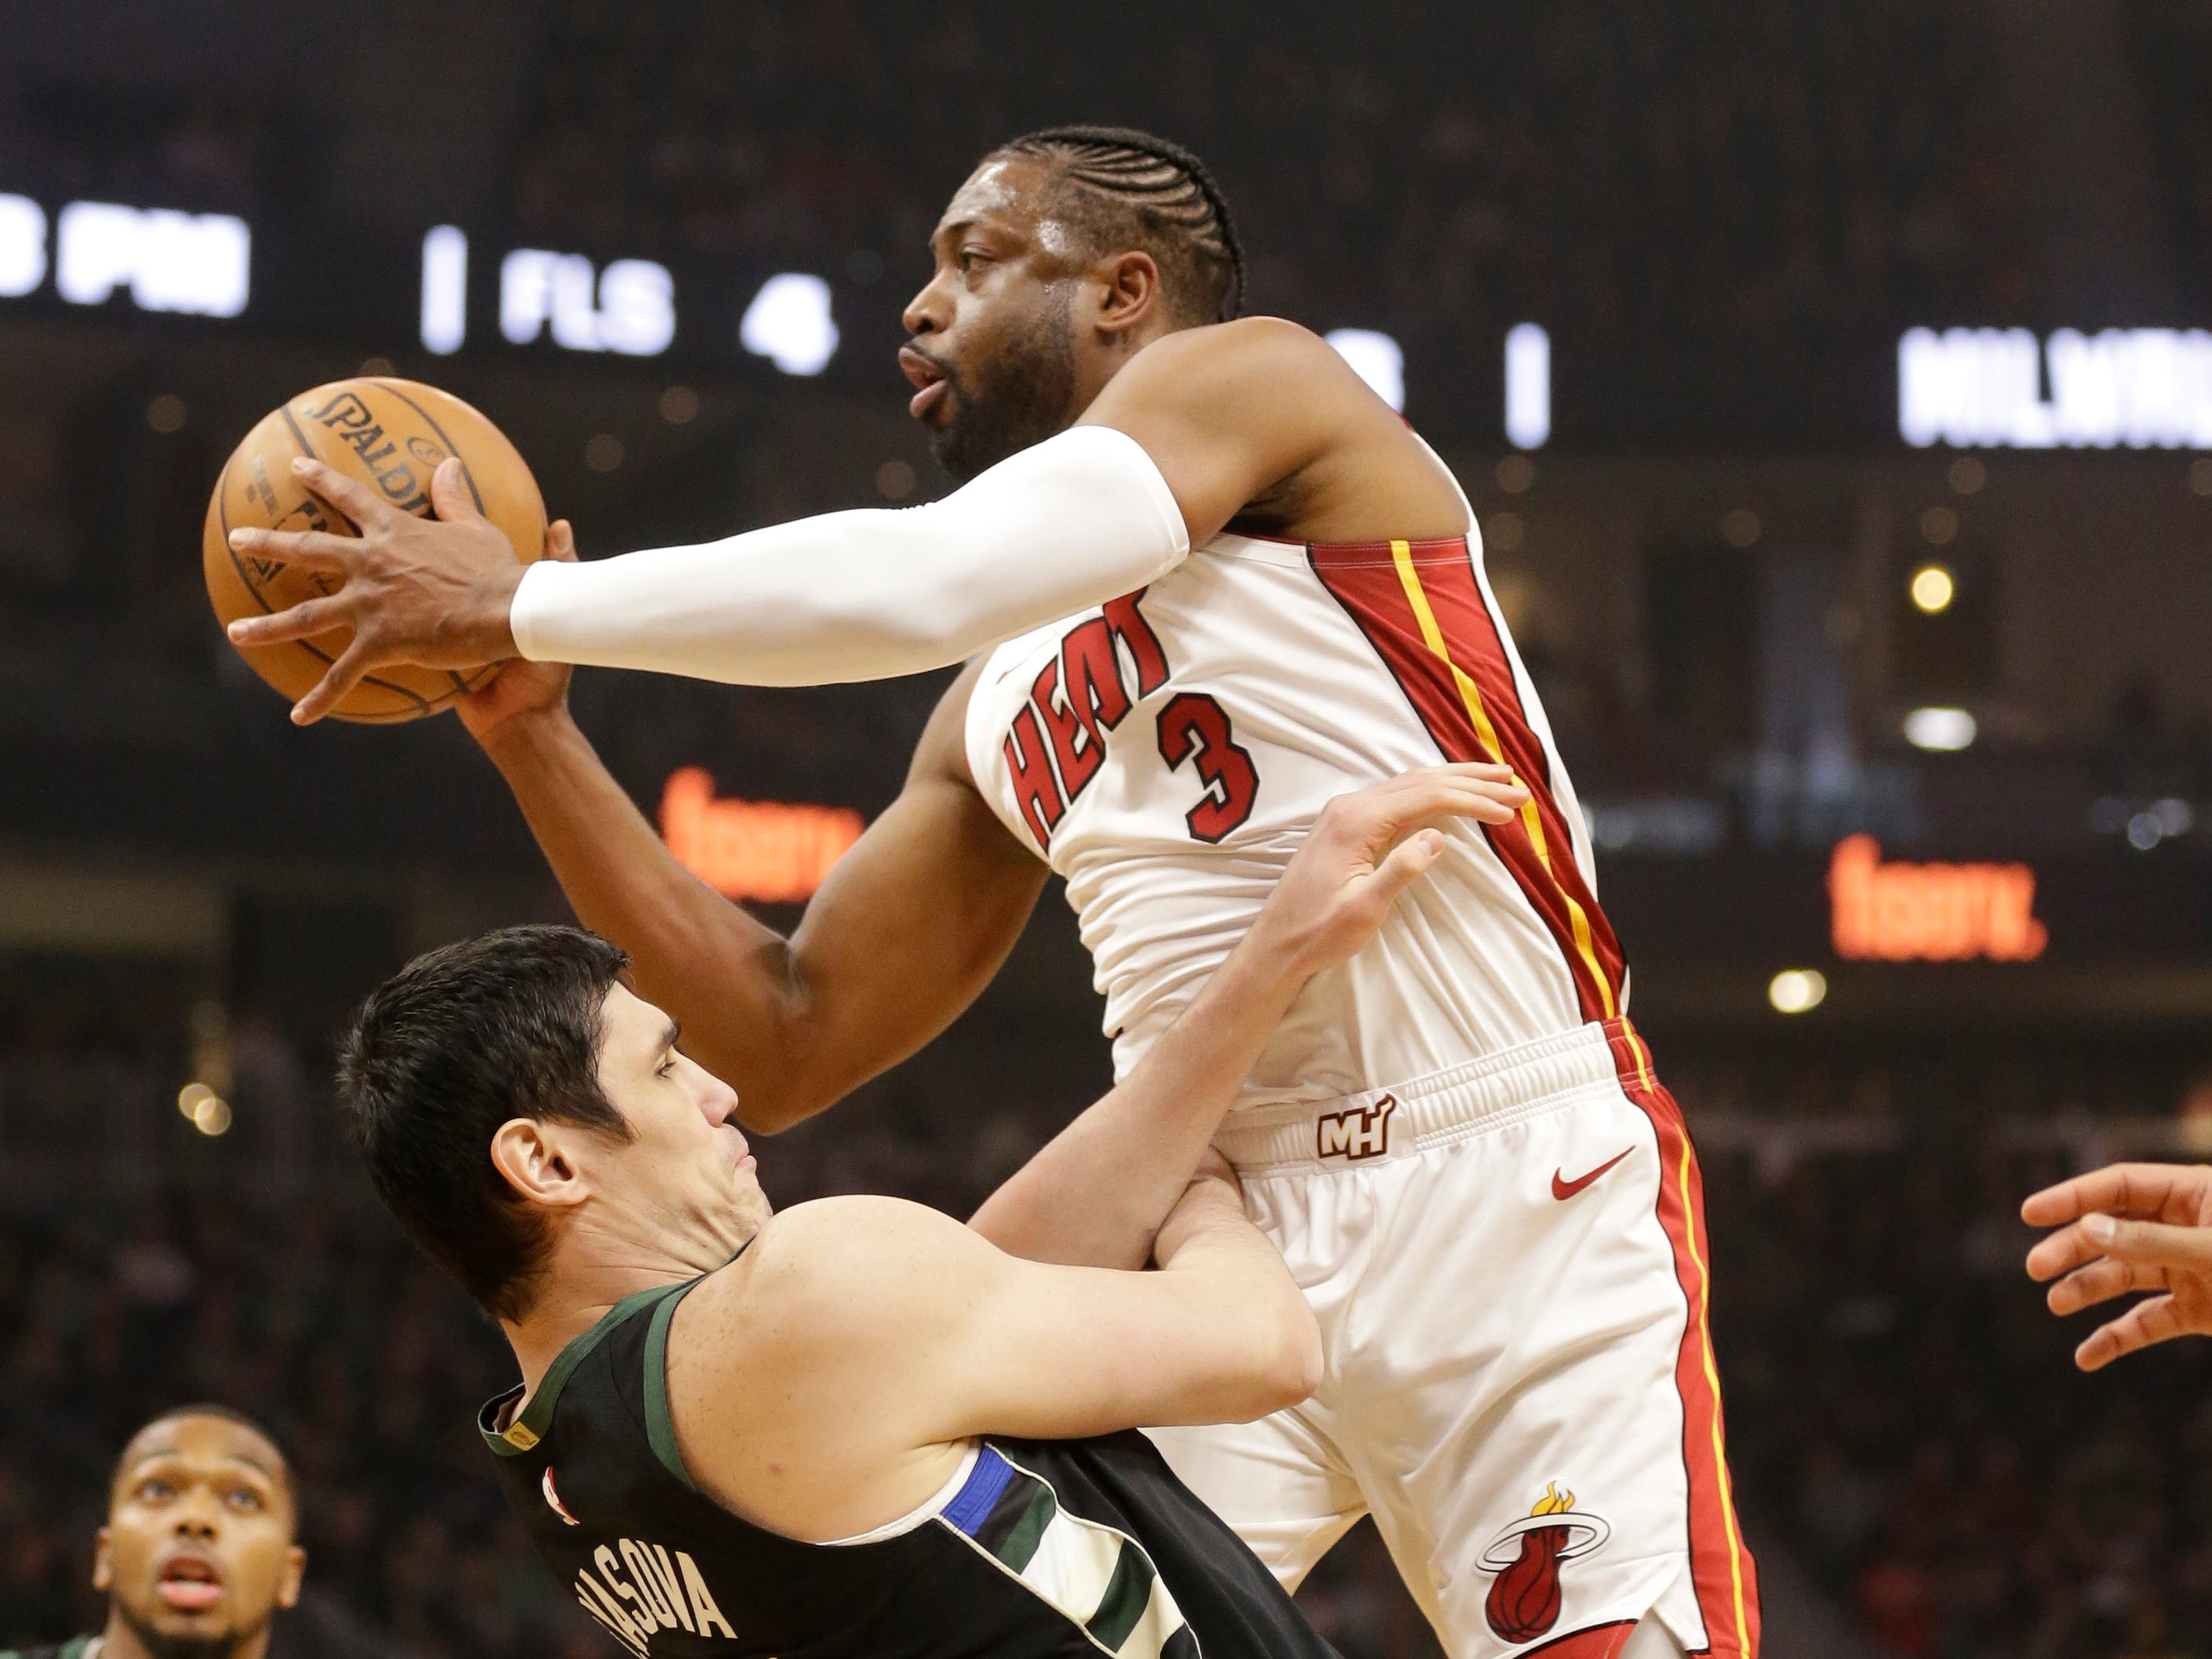 Heat guard Dwyane Wade is fouled by the Bucks' Ersan Ilyasova on a drive to the rack during the first half.